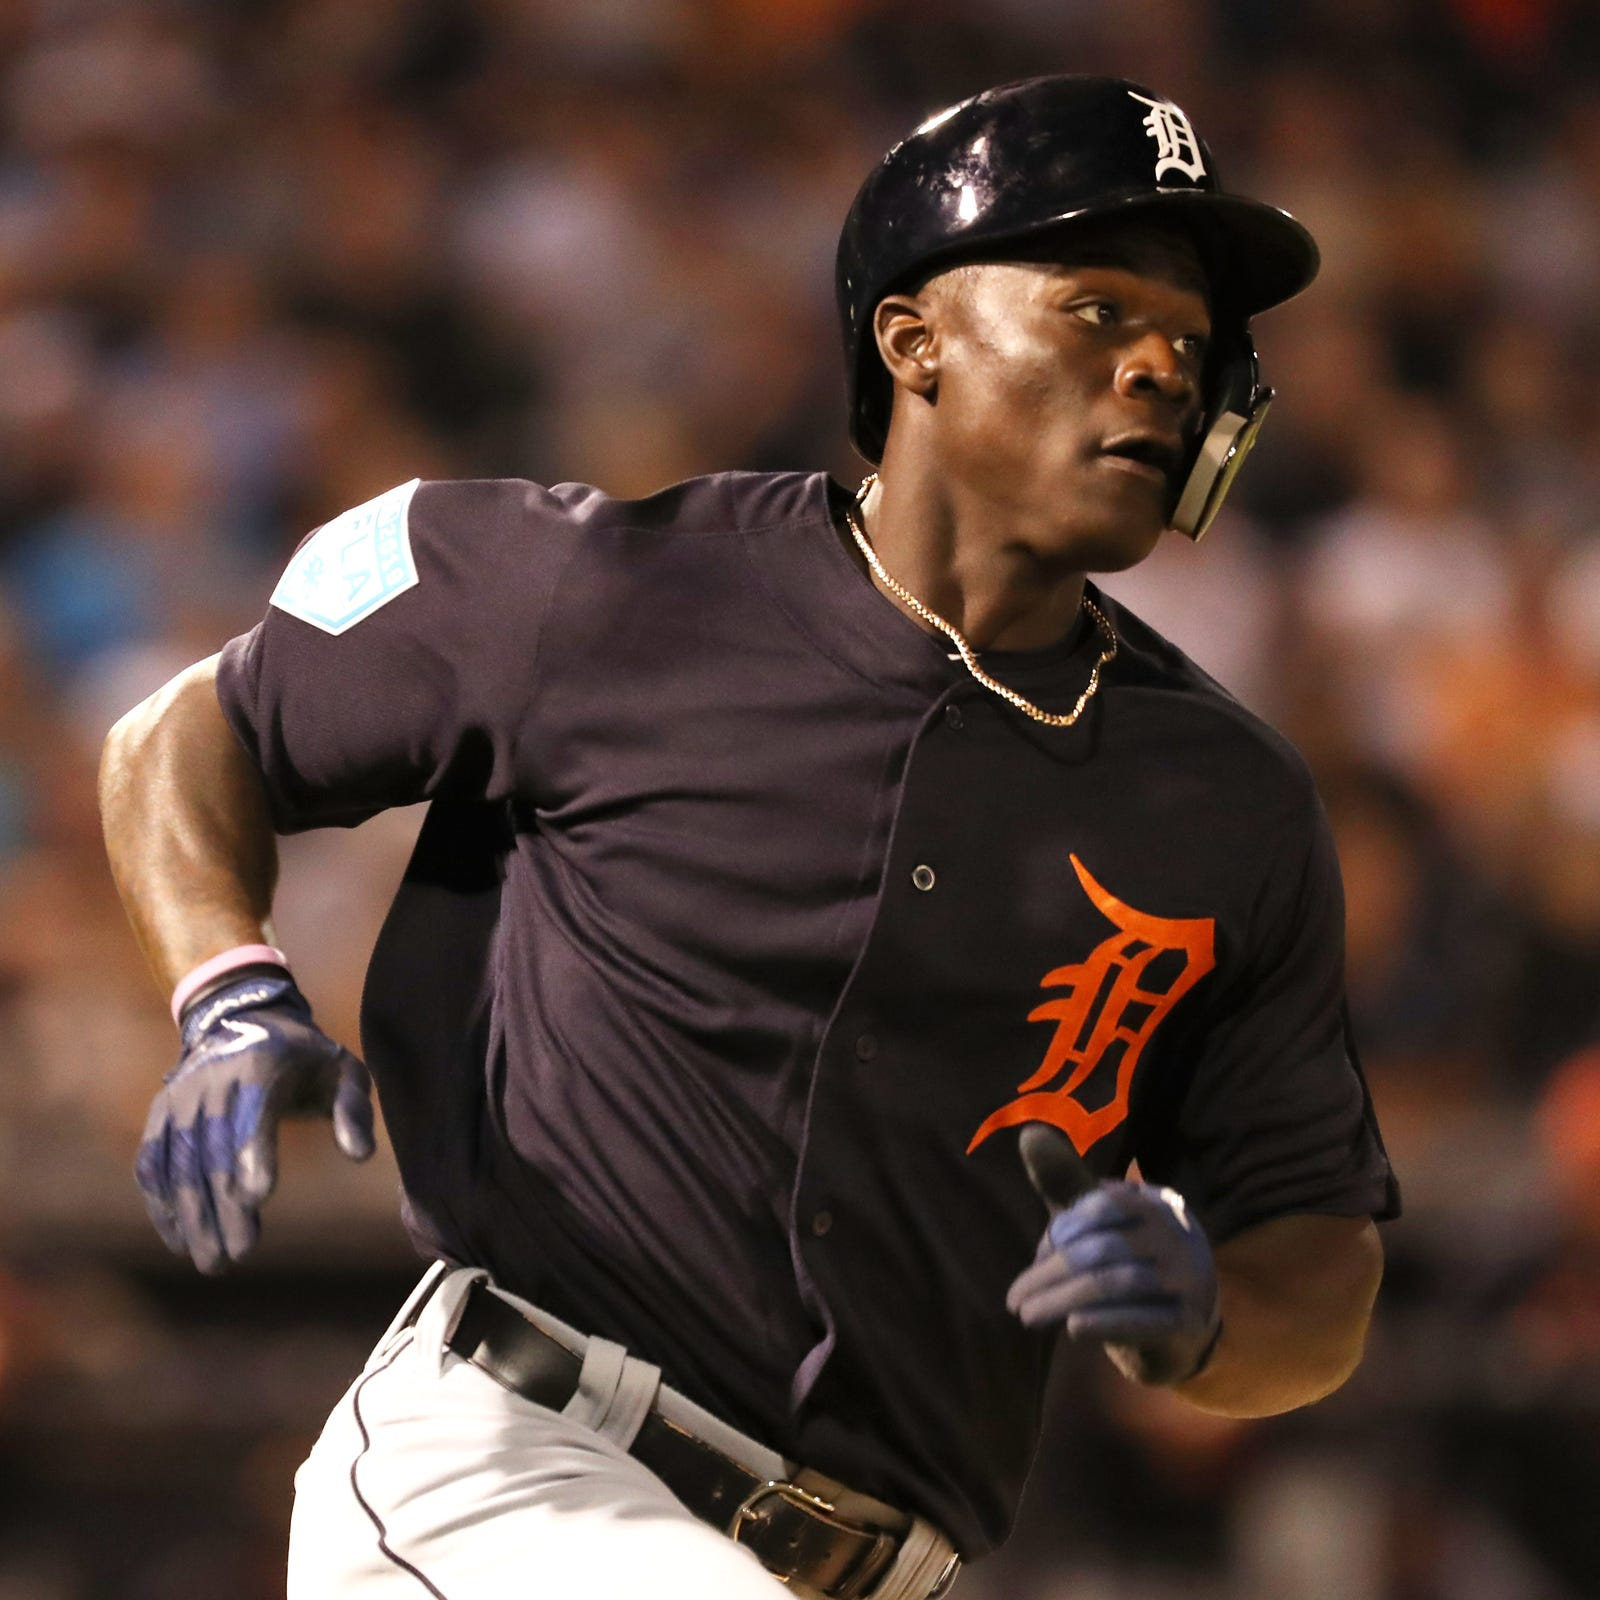 Daz Cameron's quest to make Detroit Tigers over. He'll start in minors